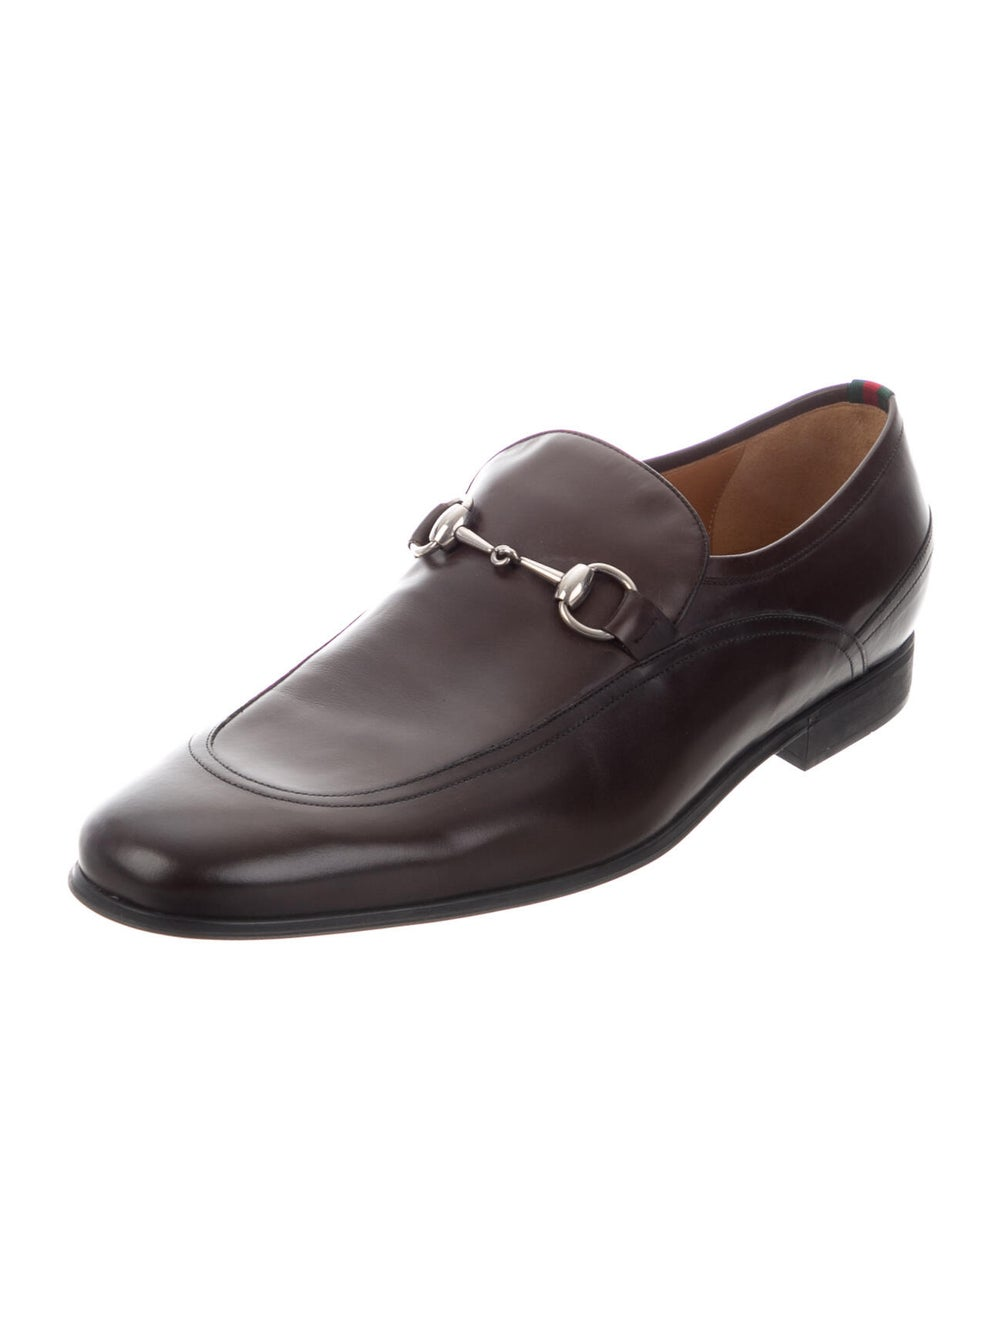 Gucci Horsebit Accent Leather Dress Loafers Brown - image 2